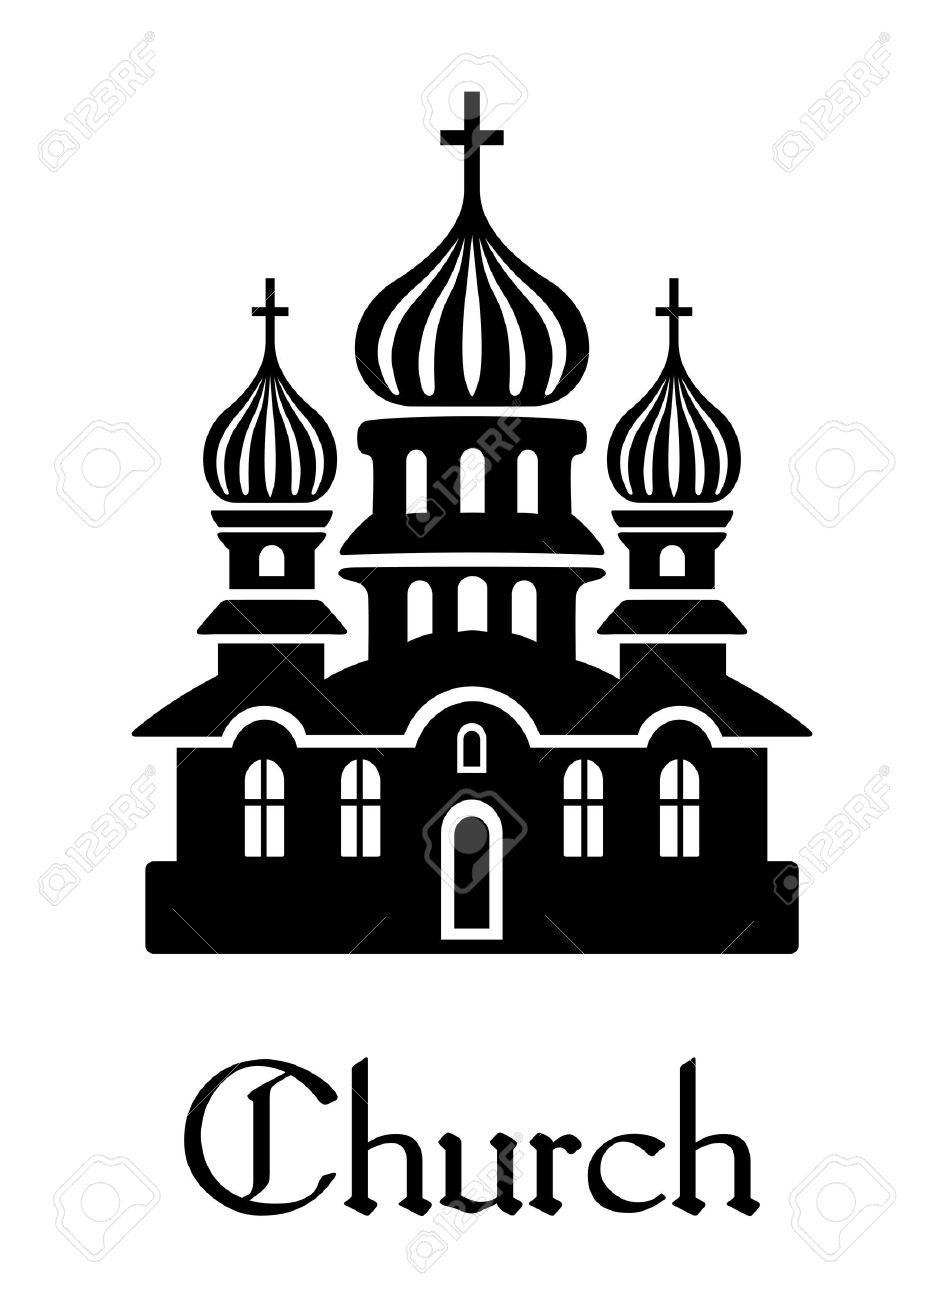 Black And White Silhouette Church Icon With Onion Shaped Domes.